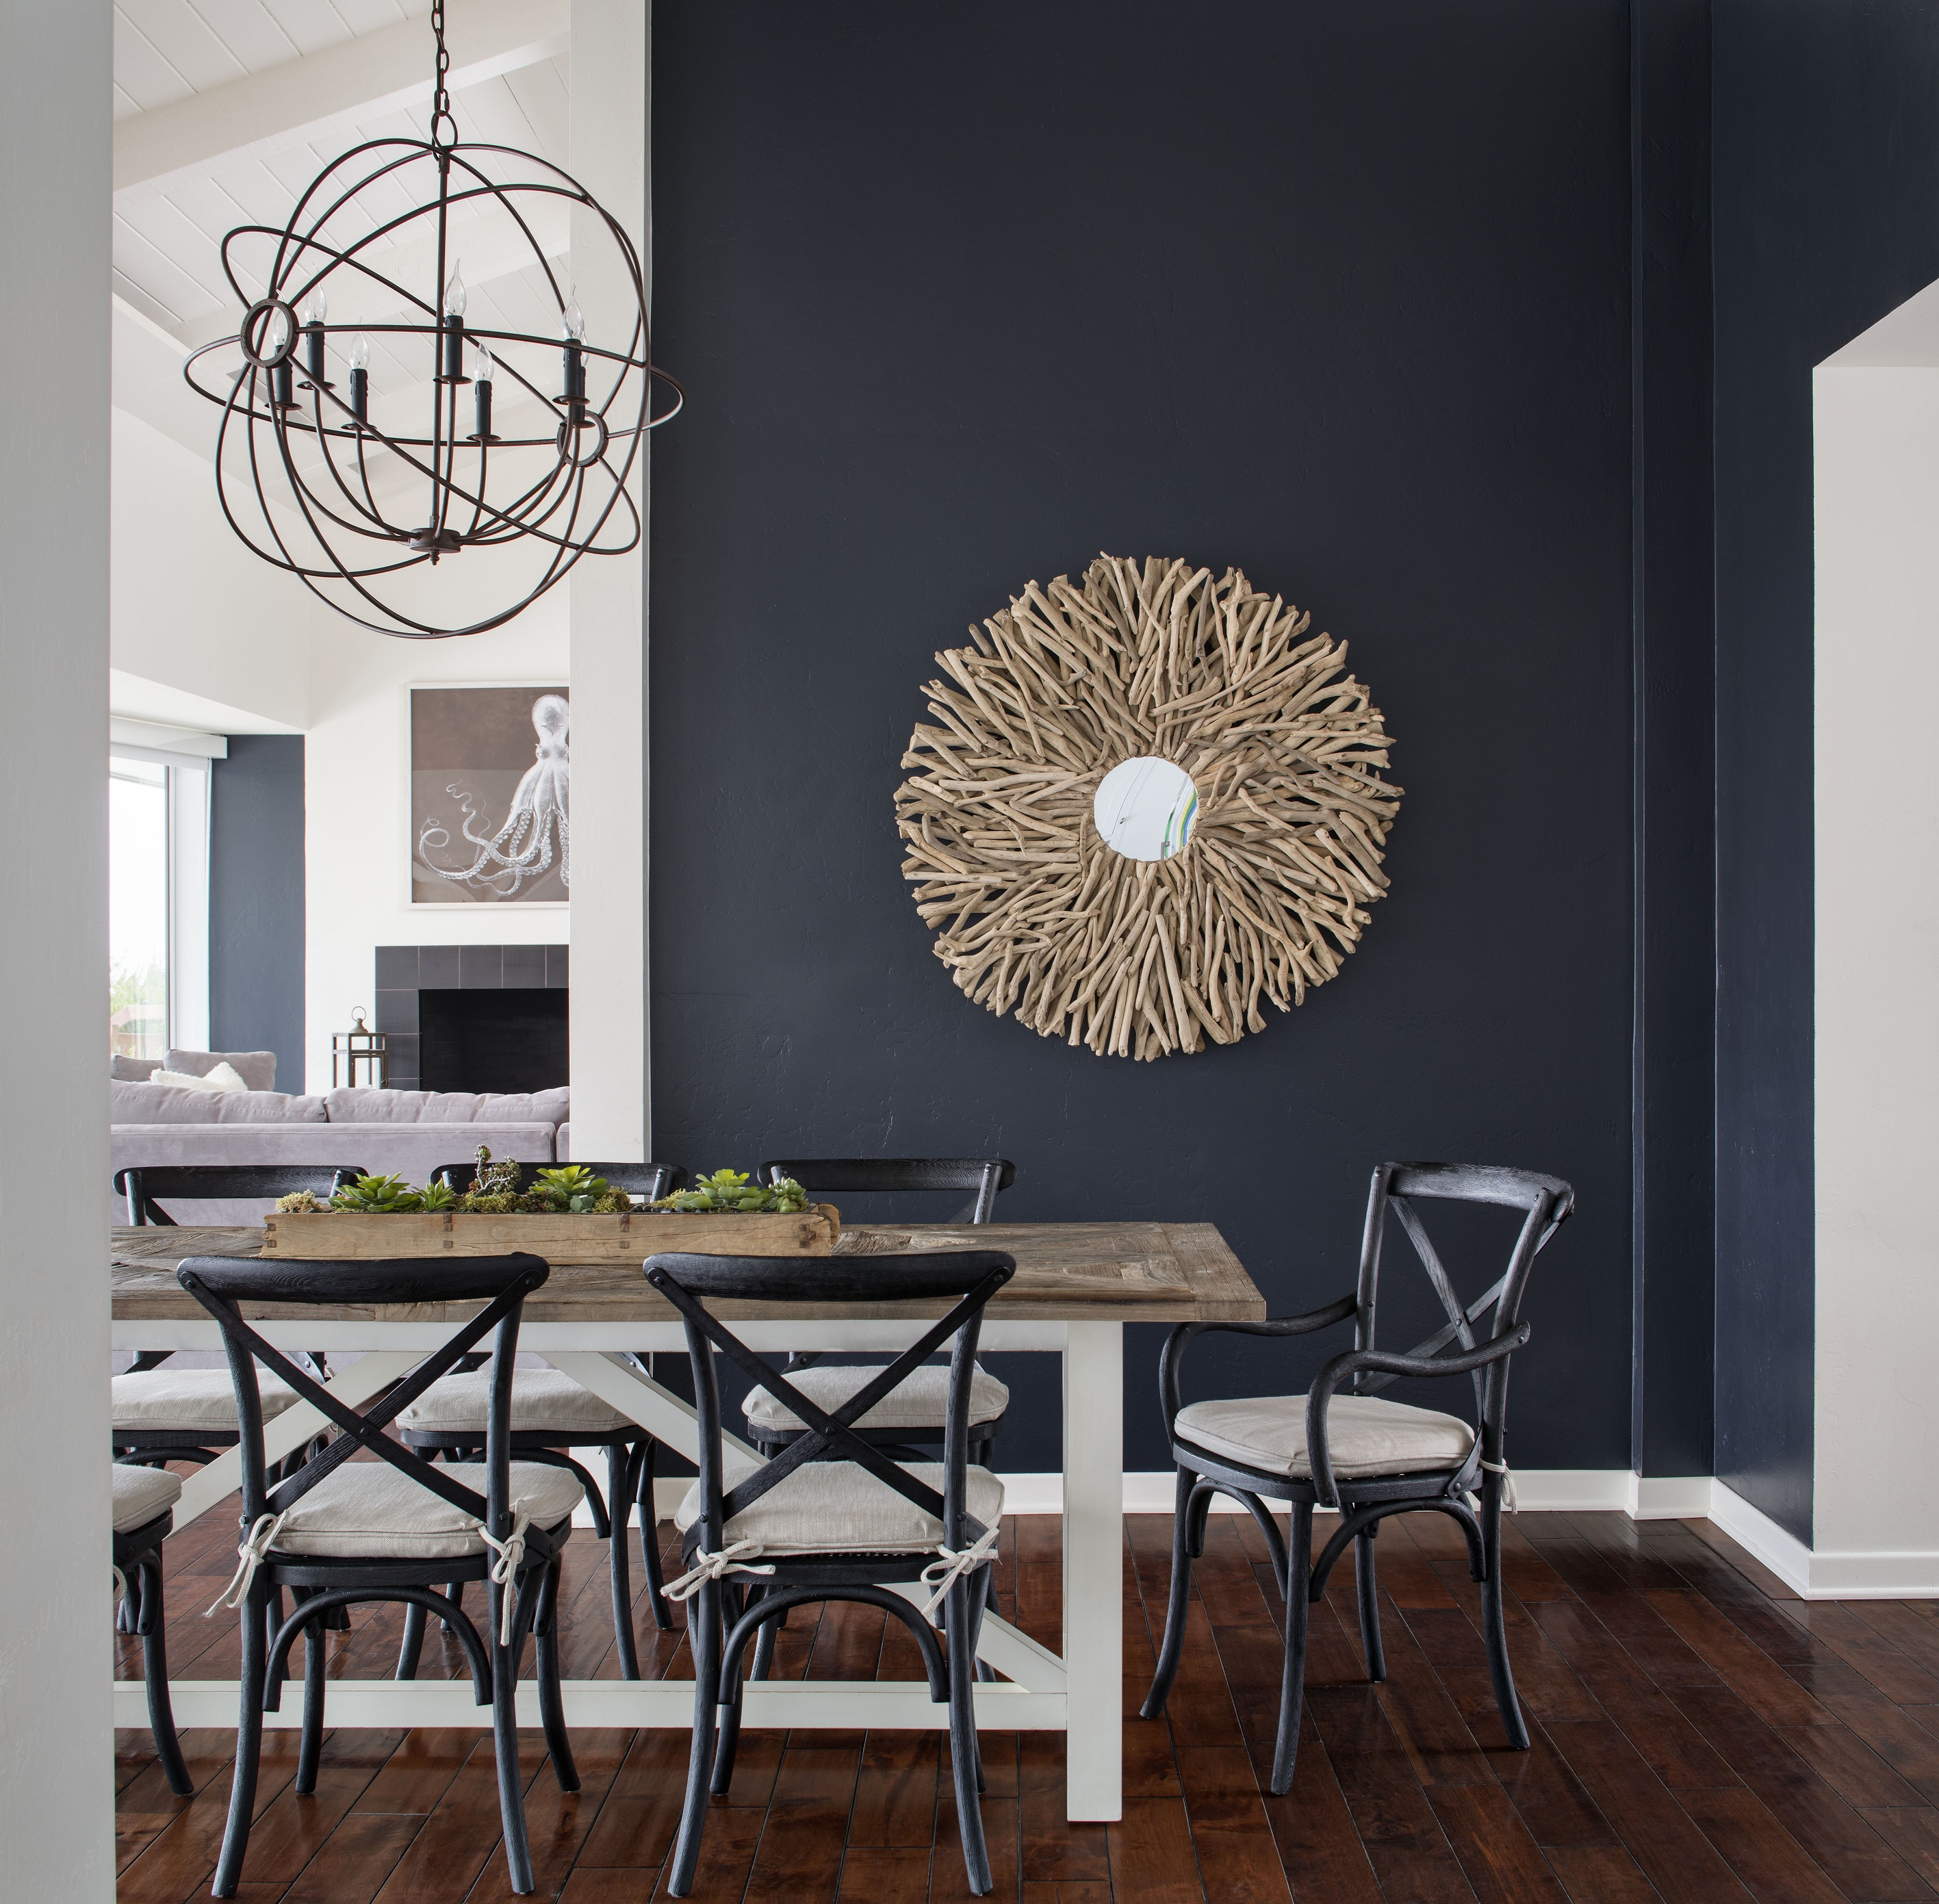 San Diego Interior Decorators 6 expert designers predict 2016 interior design trends